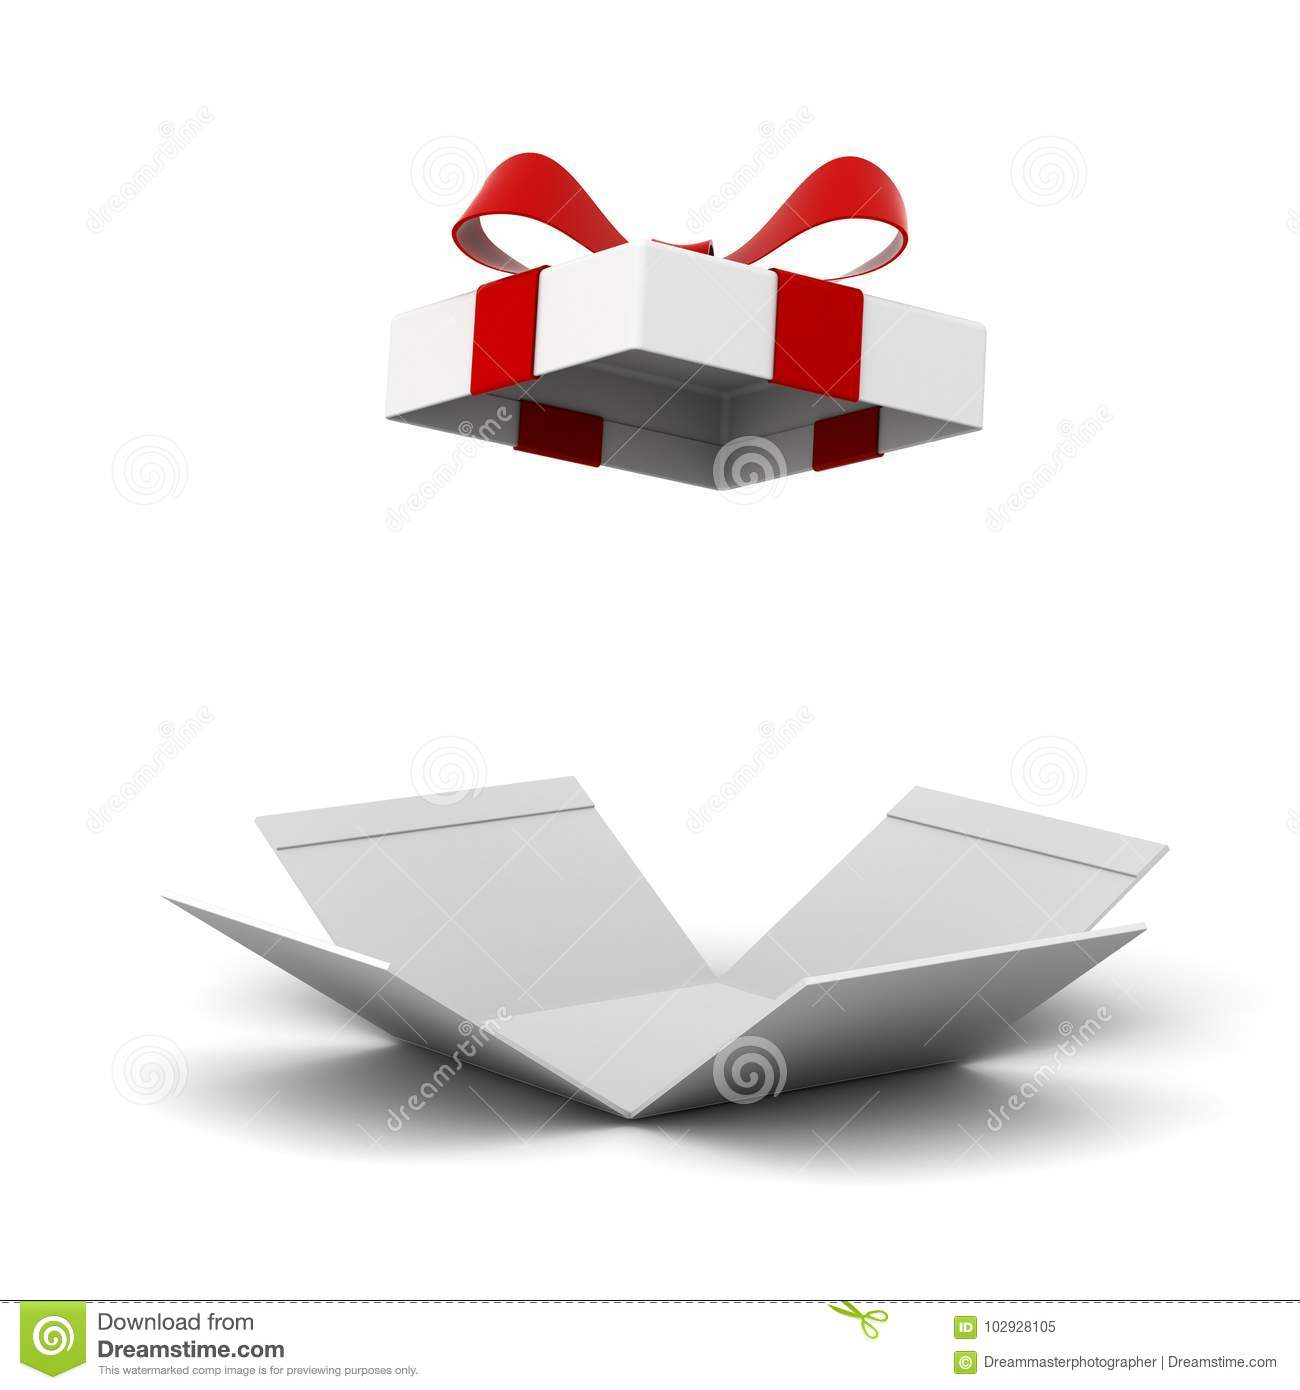 Open gift box , present box with red ribbon bow isolated on white background with shadow